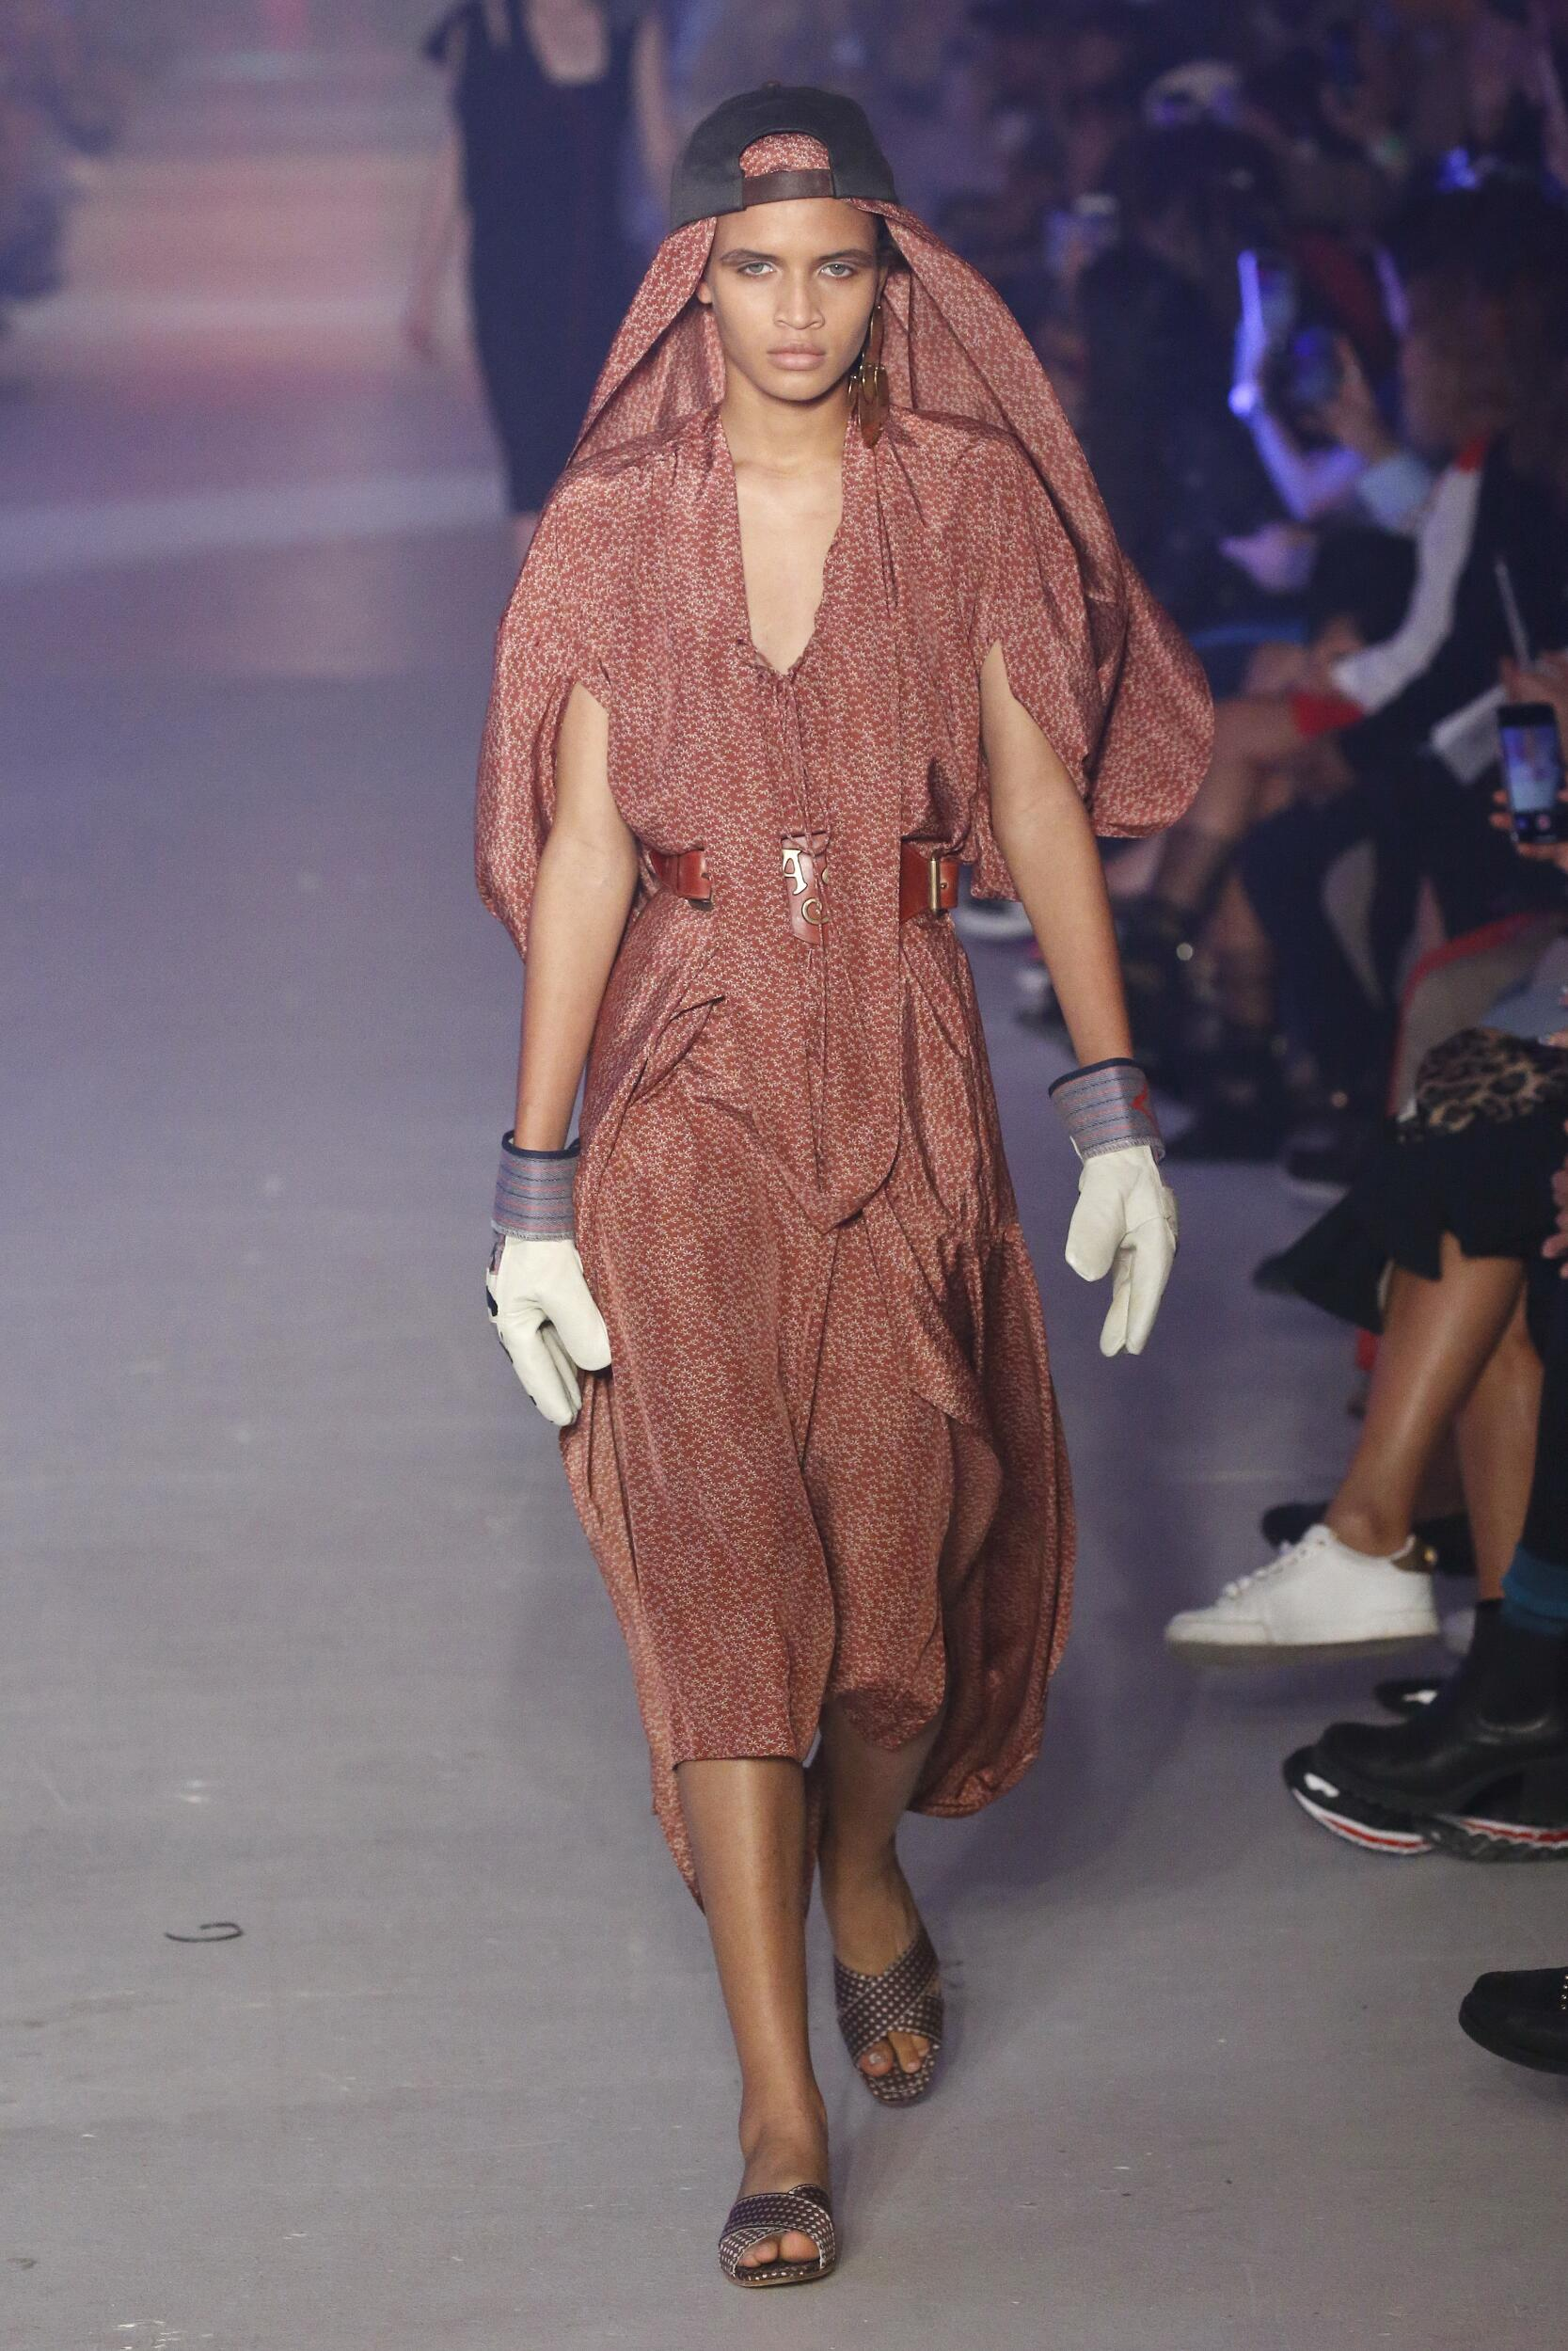 Woman SS 2020 Andreas Kronthaler for Vivienne Westwood Show Paris Fashion Week